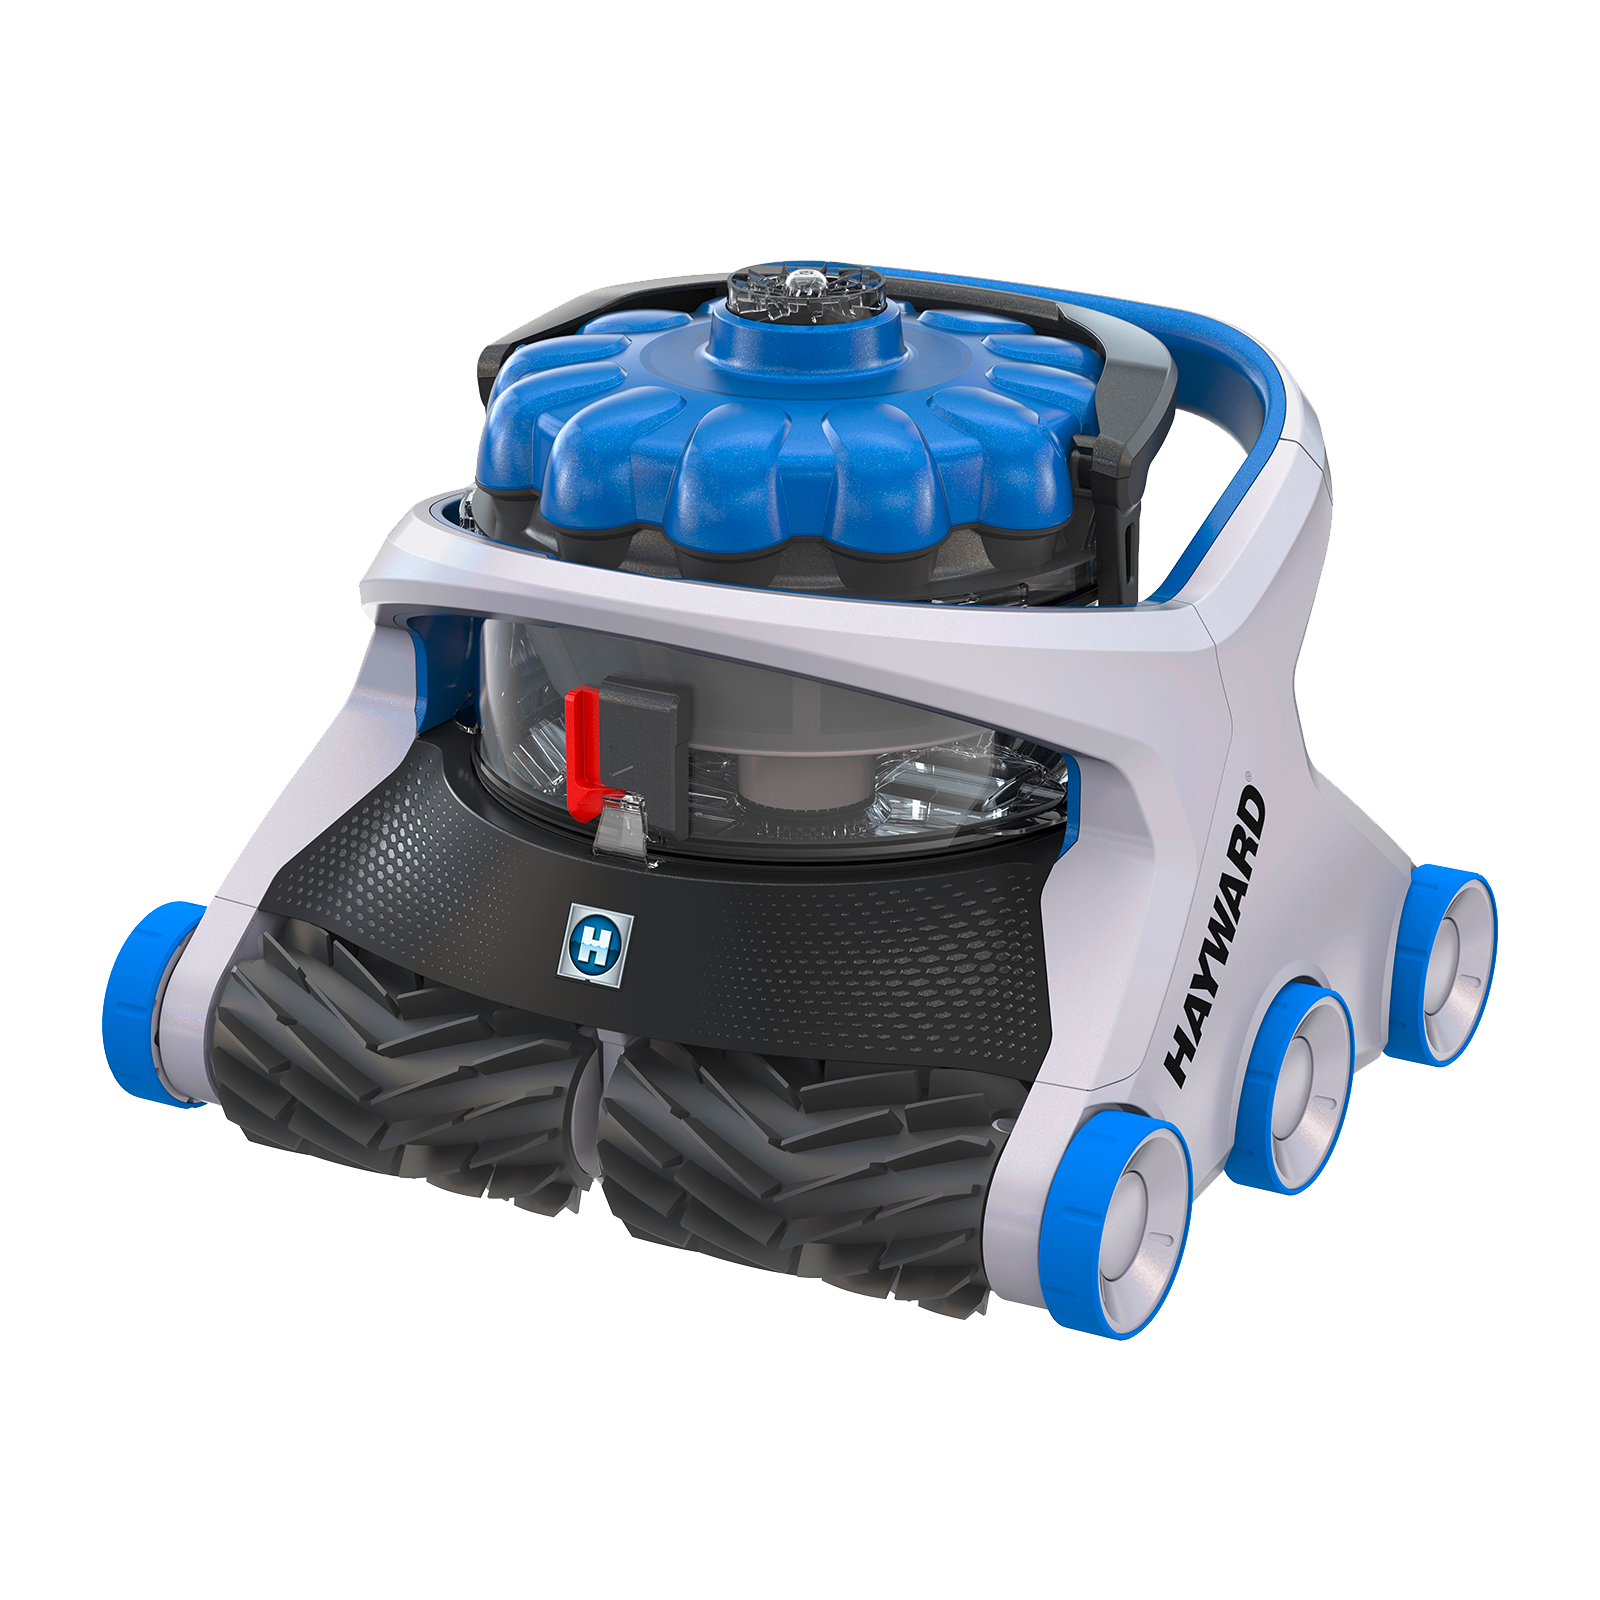 Robot piscine AquaVac® 6 Series